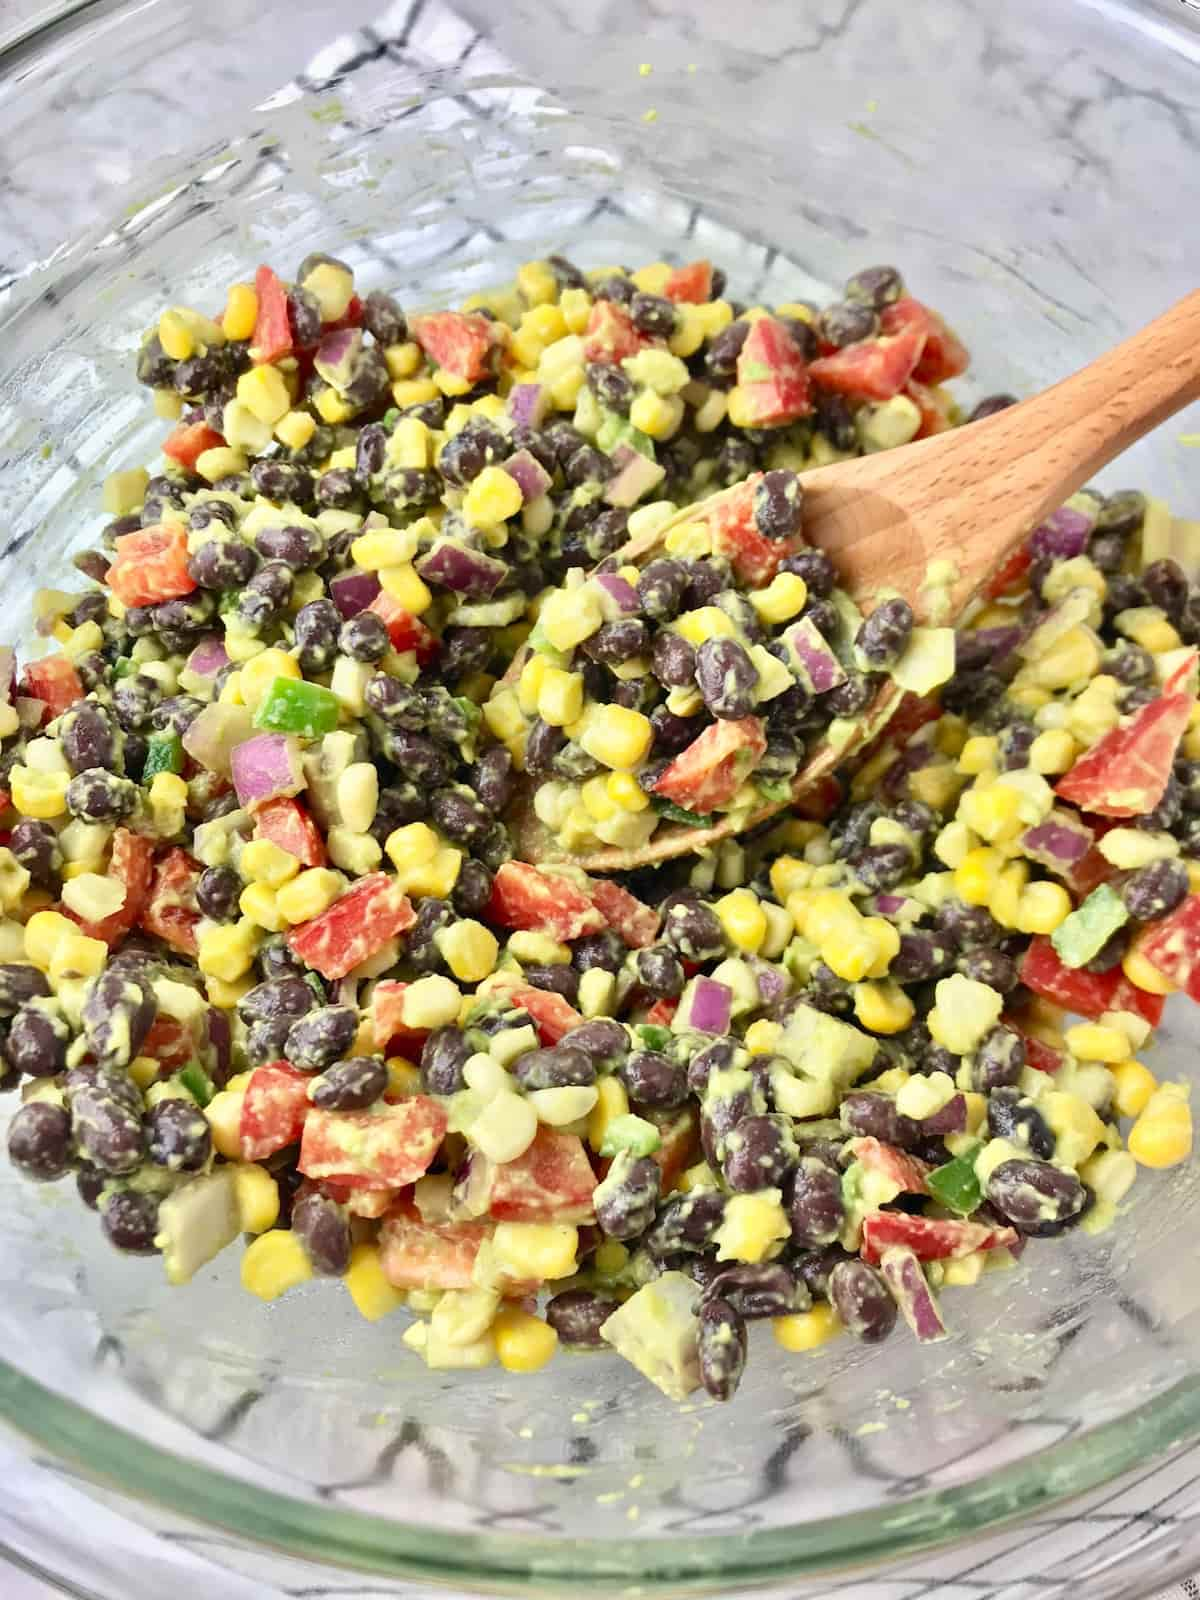 A large clear bowl full of black bean and corn salad with a wooden spoon.